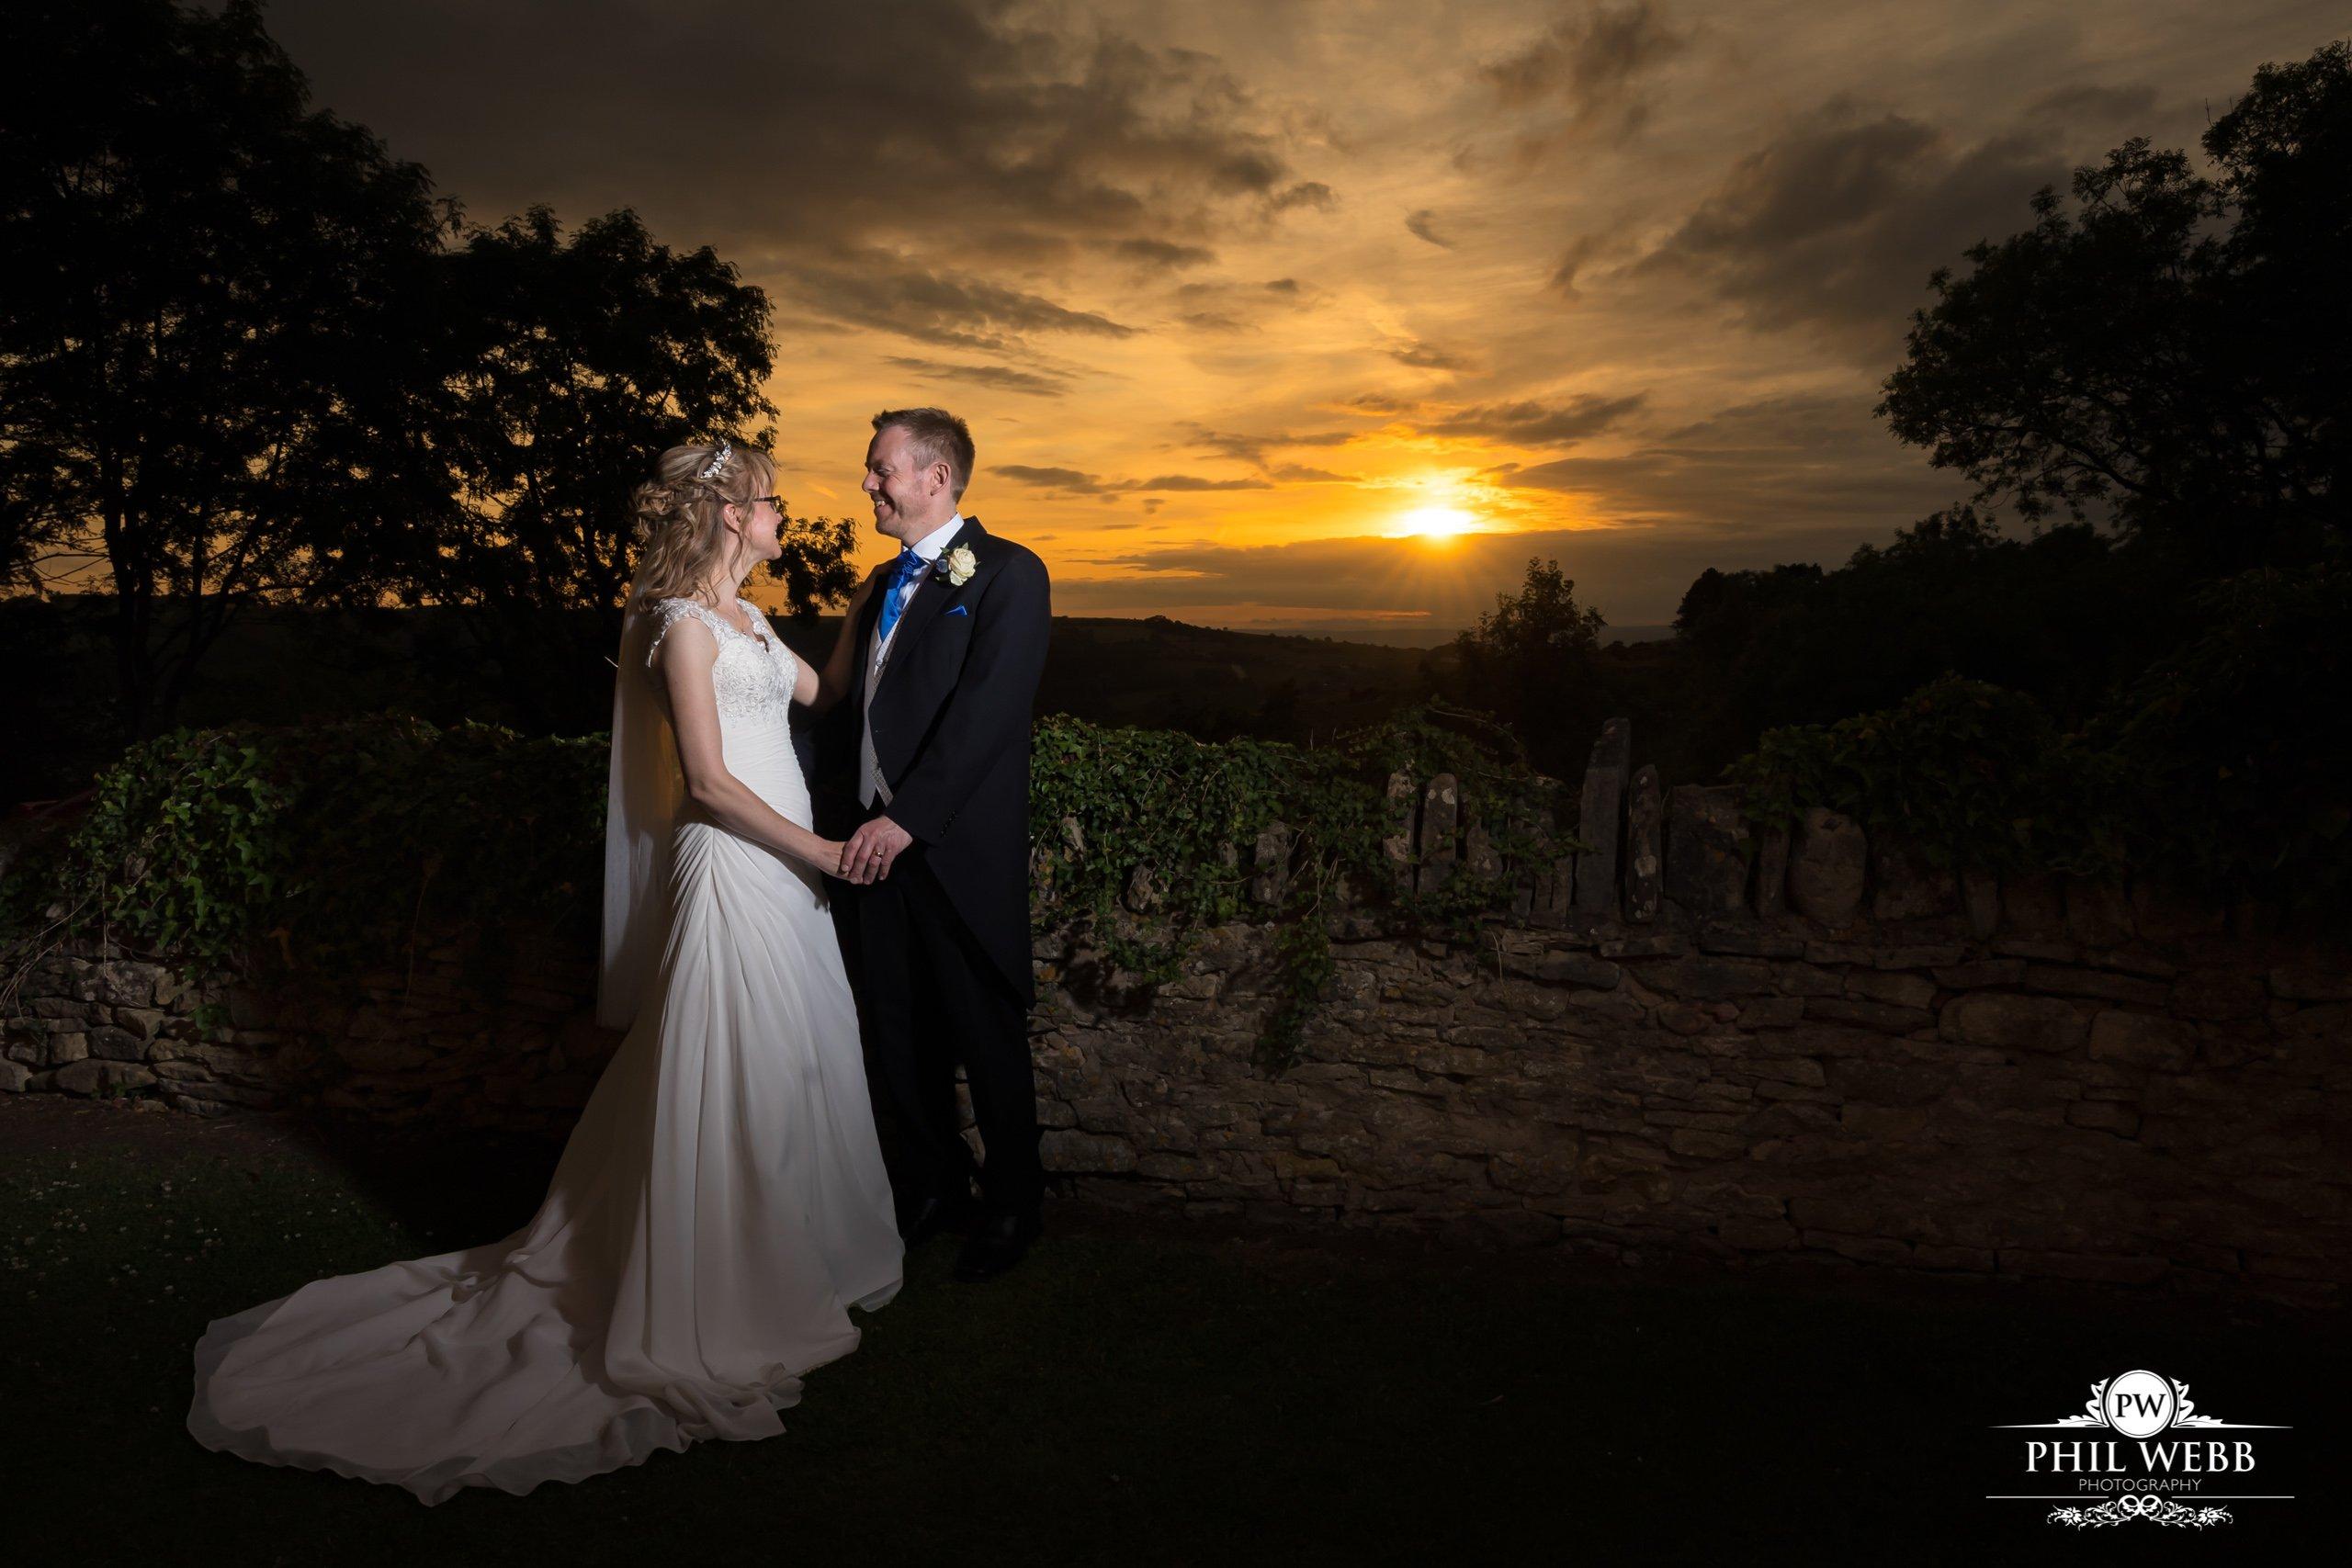 Lisa & Mark's Wedding - The Bear of Rodborough